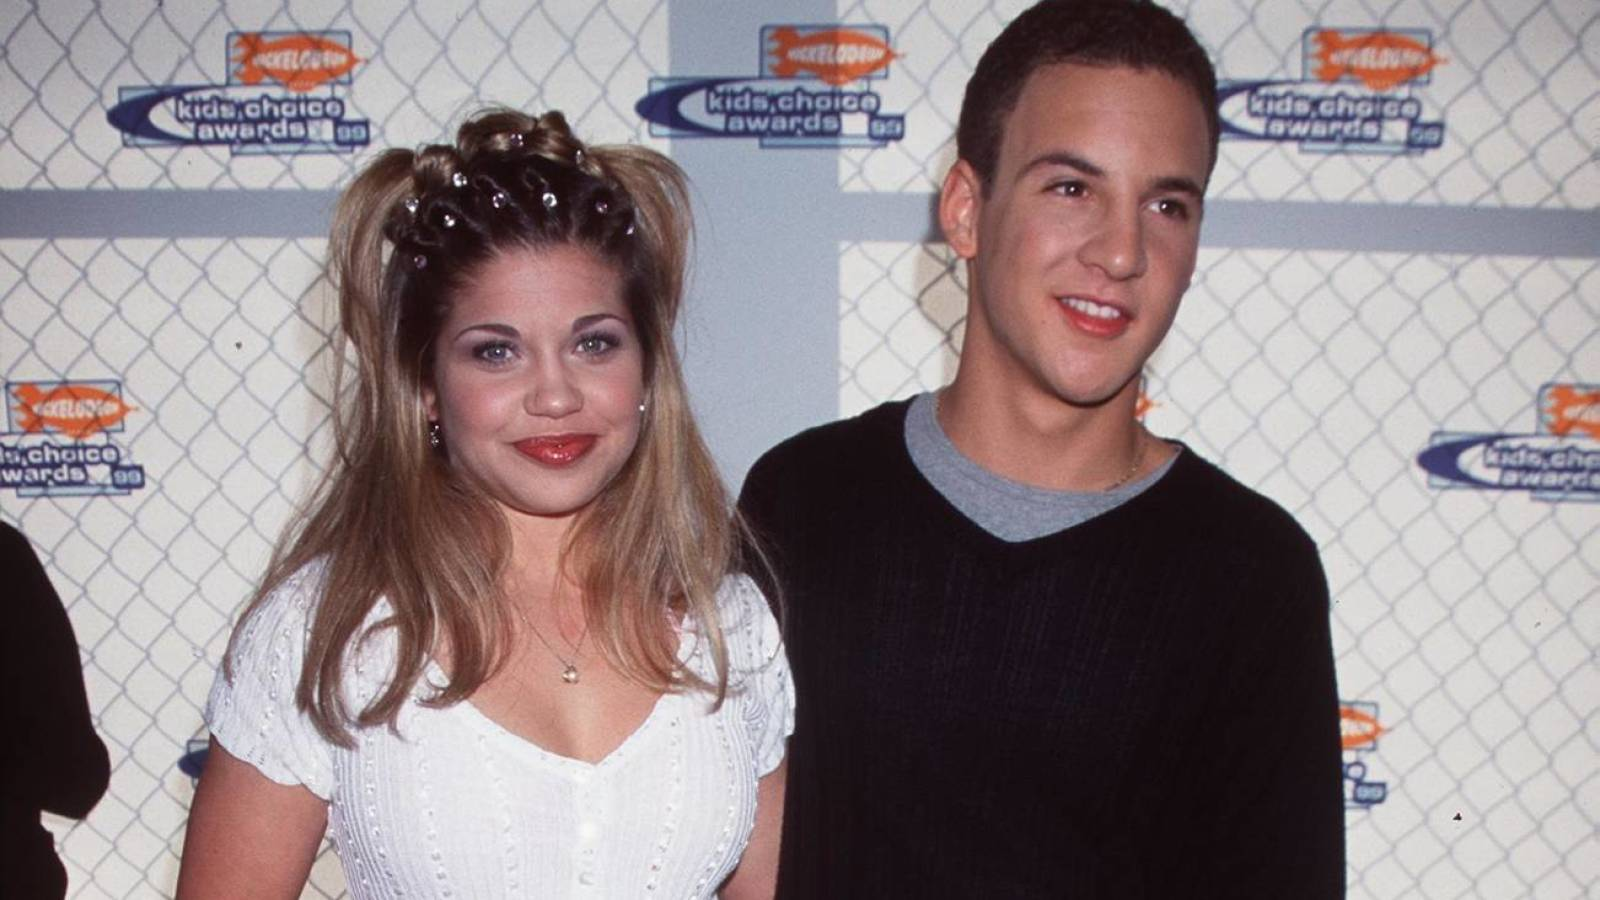 Topanga in come episode what does 8 'Boy